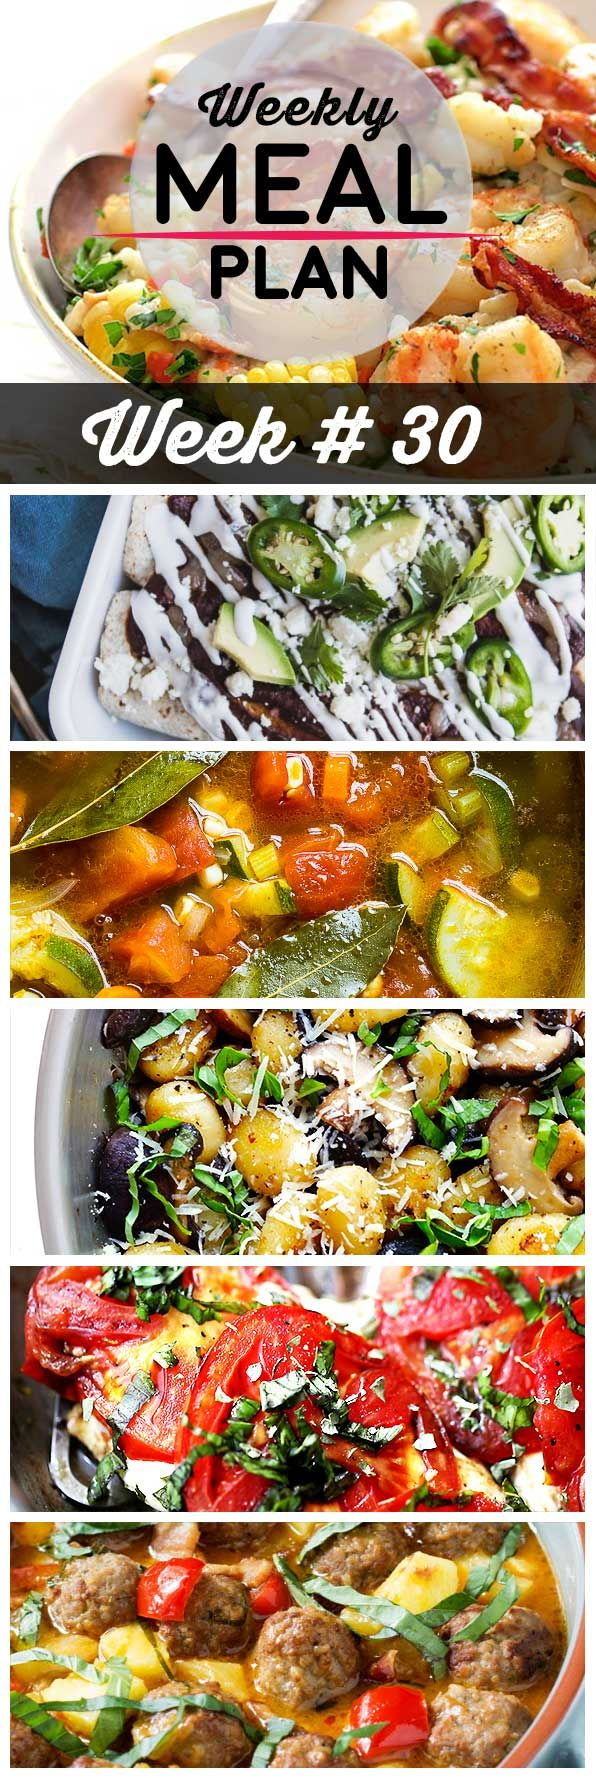 Weekly Meal Plan #30! A meal plan to help you keep things tasty each week, including shrimp and corn risotto, simple mole chicken enchiladas, late summer vegetable soup, and more! | HomemadeHooplah.com